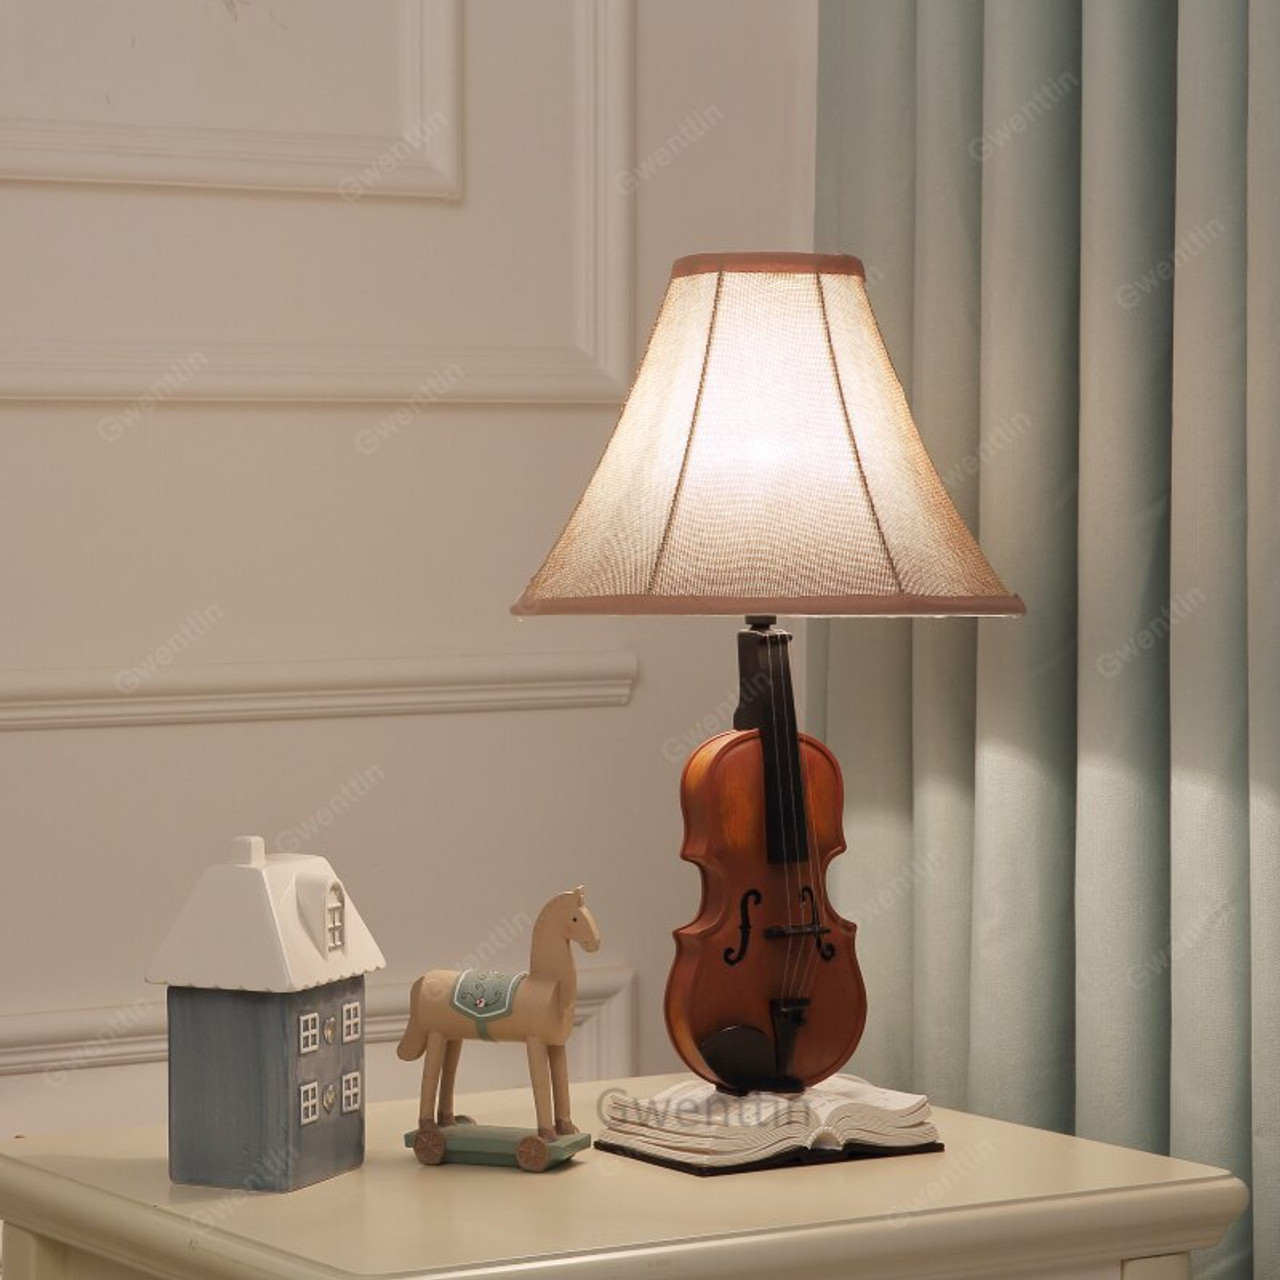 Resin Violin Table Lamps Living Room Modern Desk Lamp Children\'s Room  Bedroom Bedside Lamp Led Stand Light Fixtures Home Deco